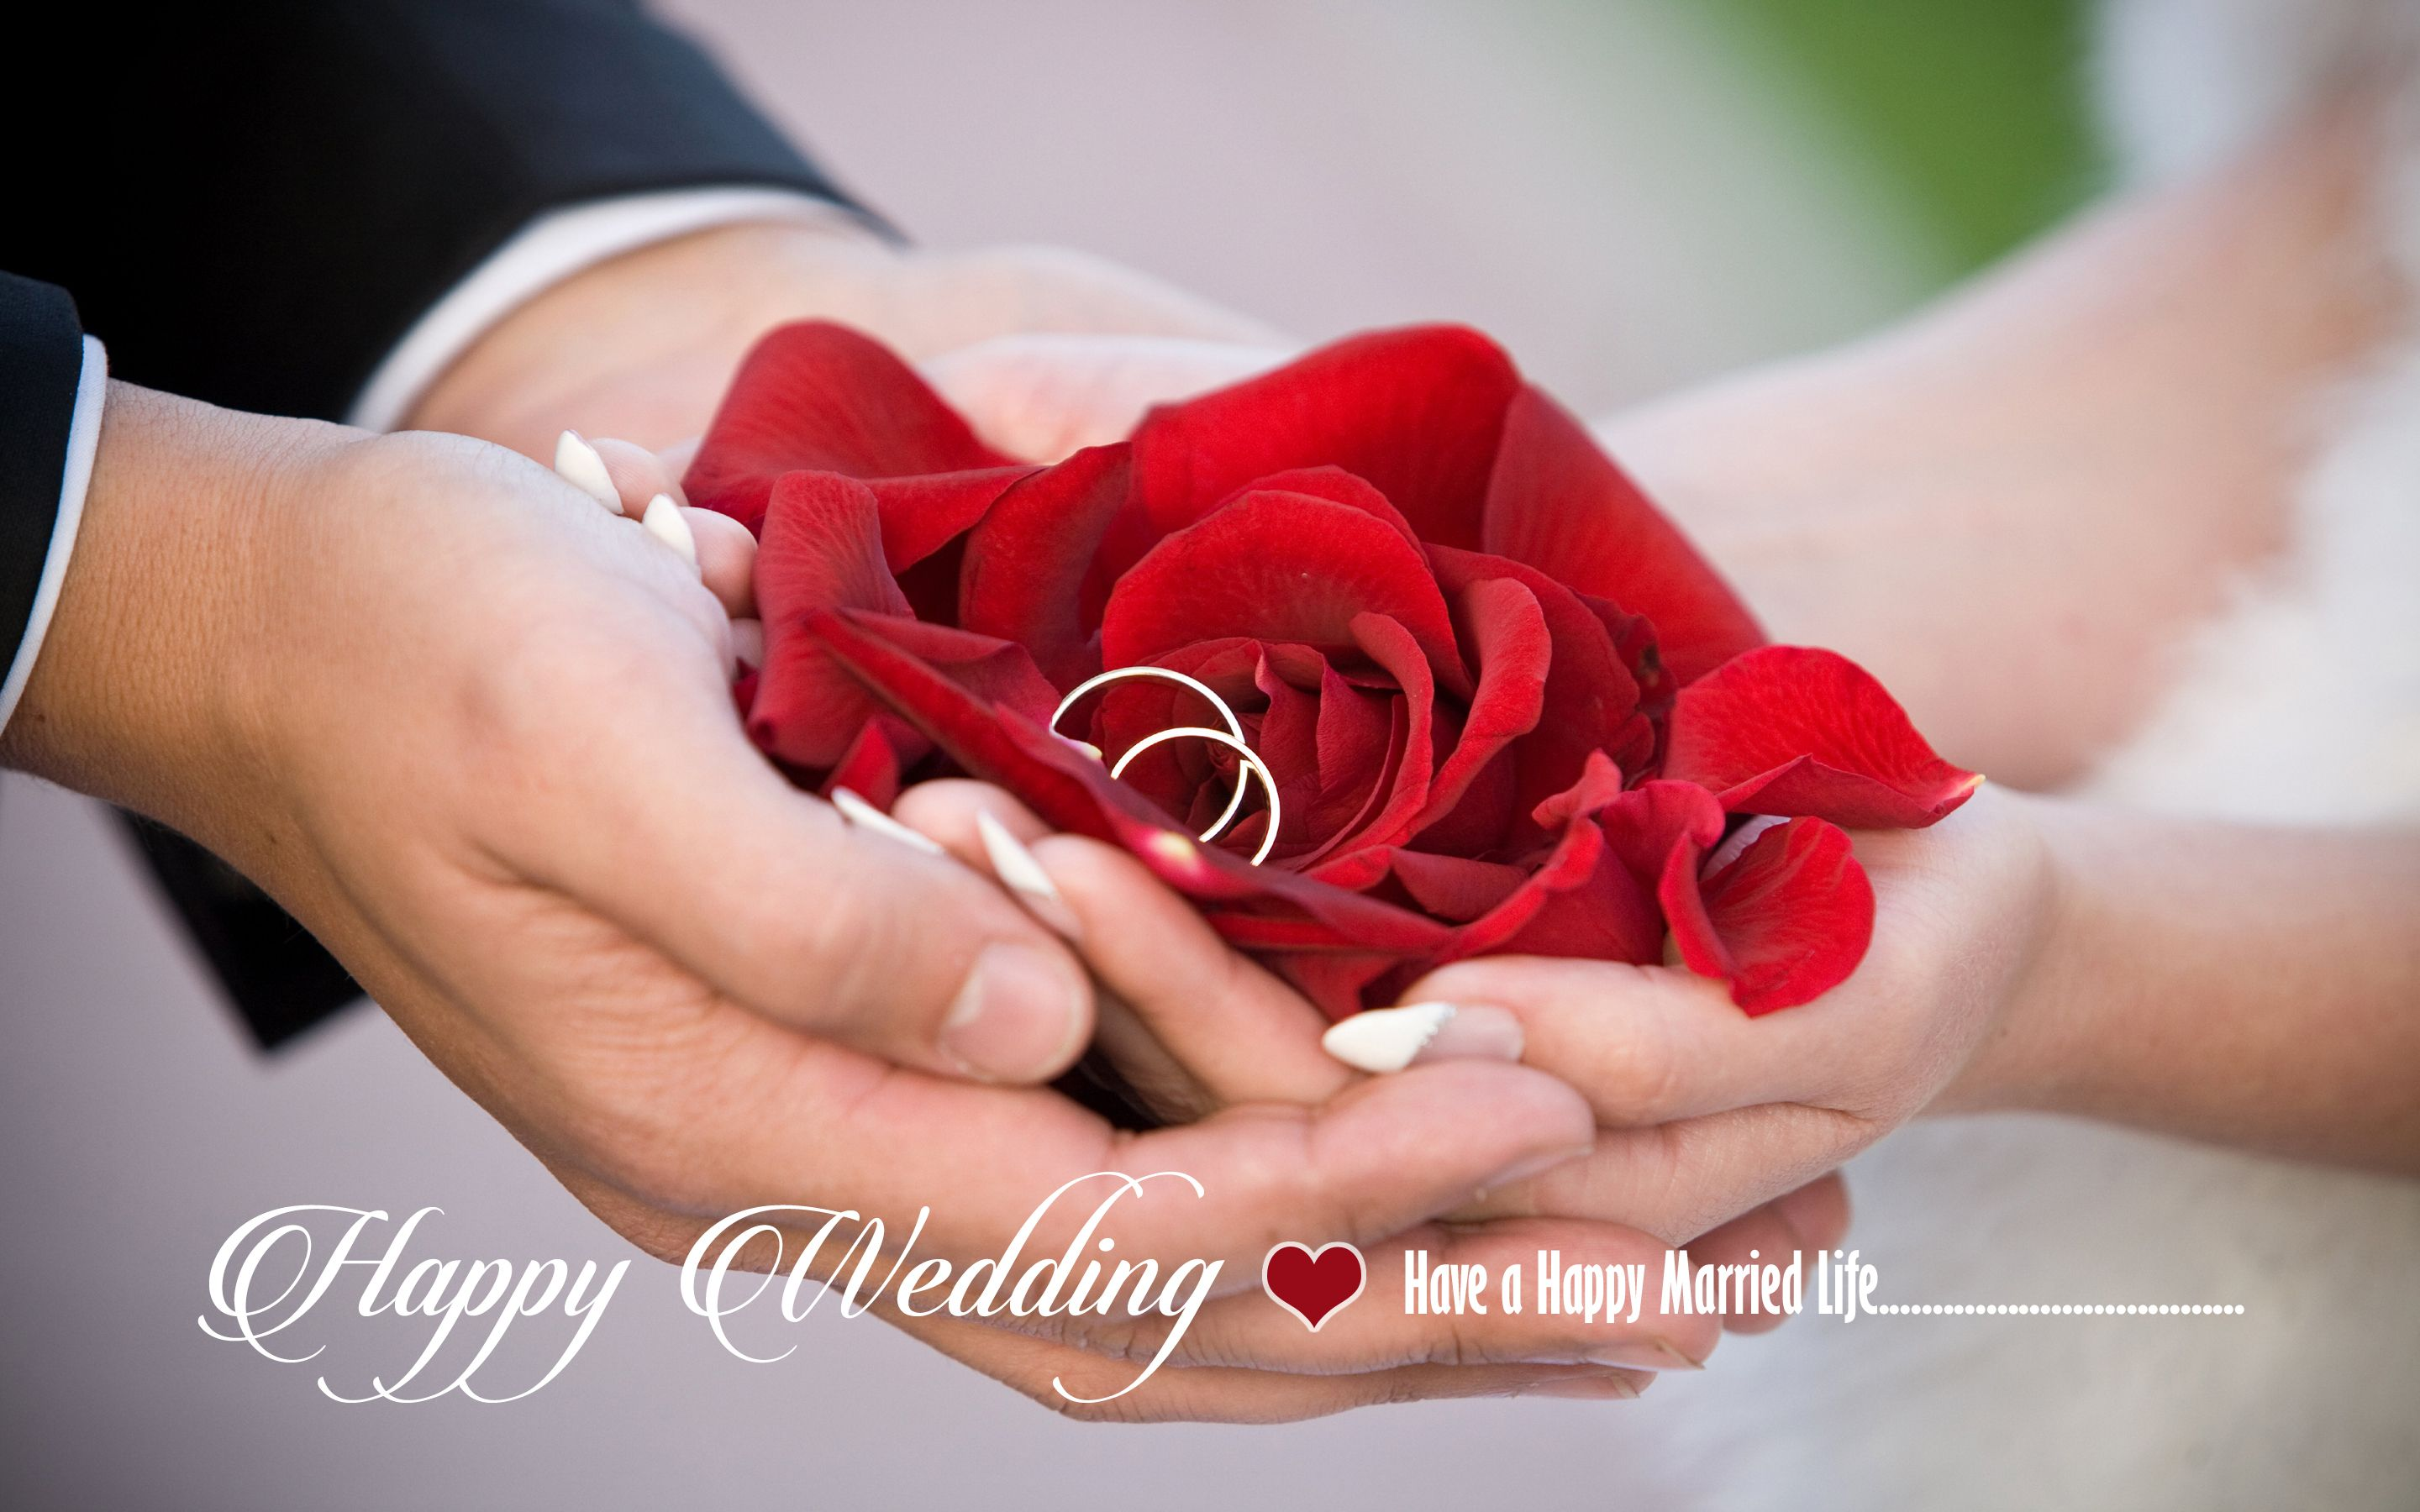 Happy Wedding Wishes HD Wallpaper Happy Wedding